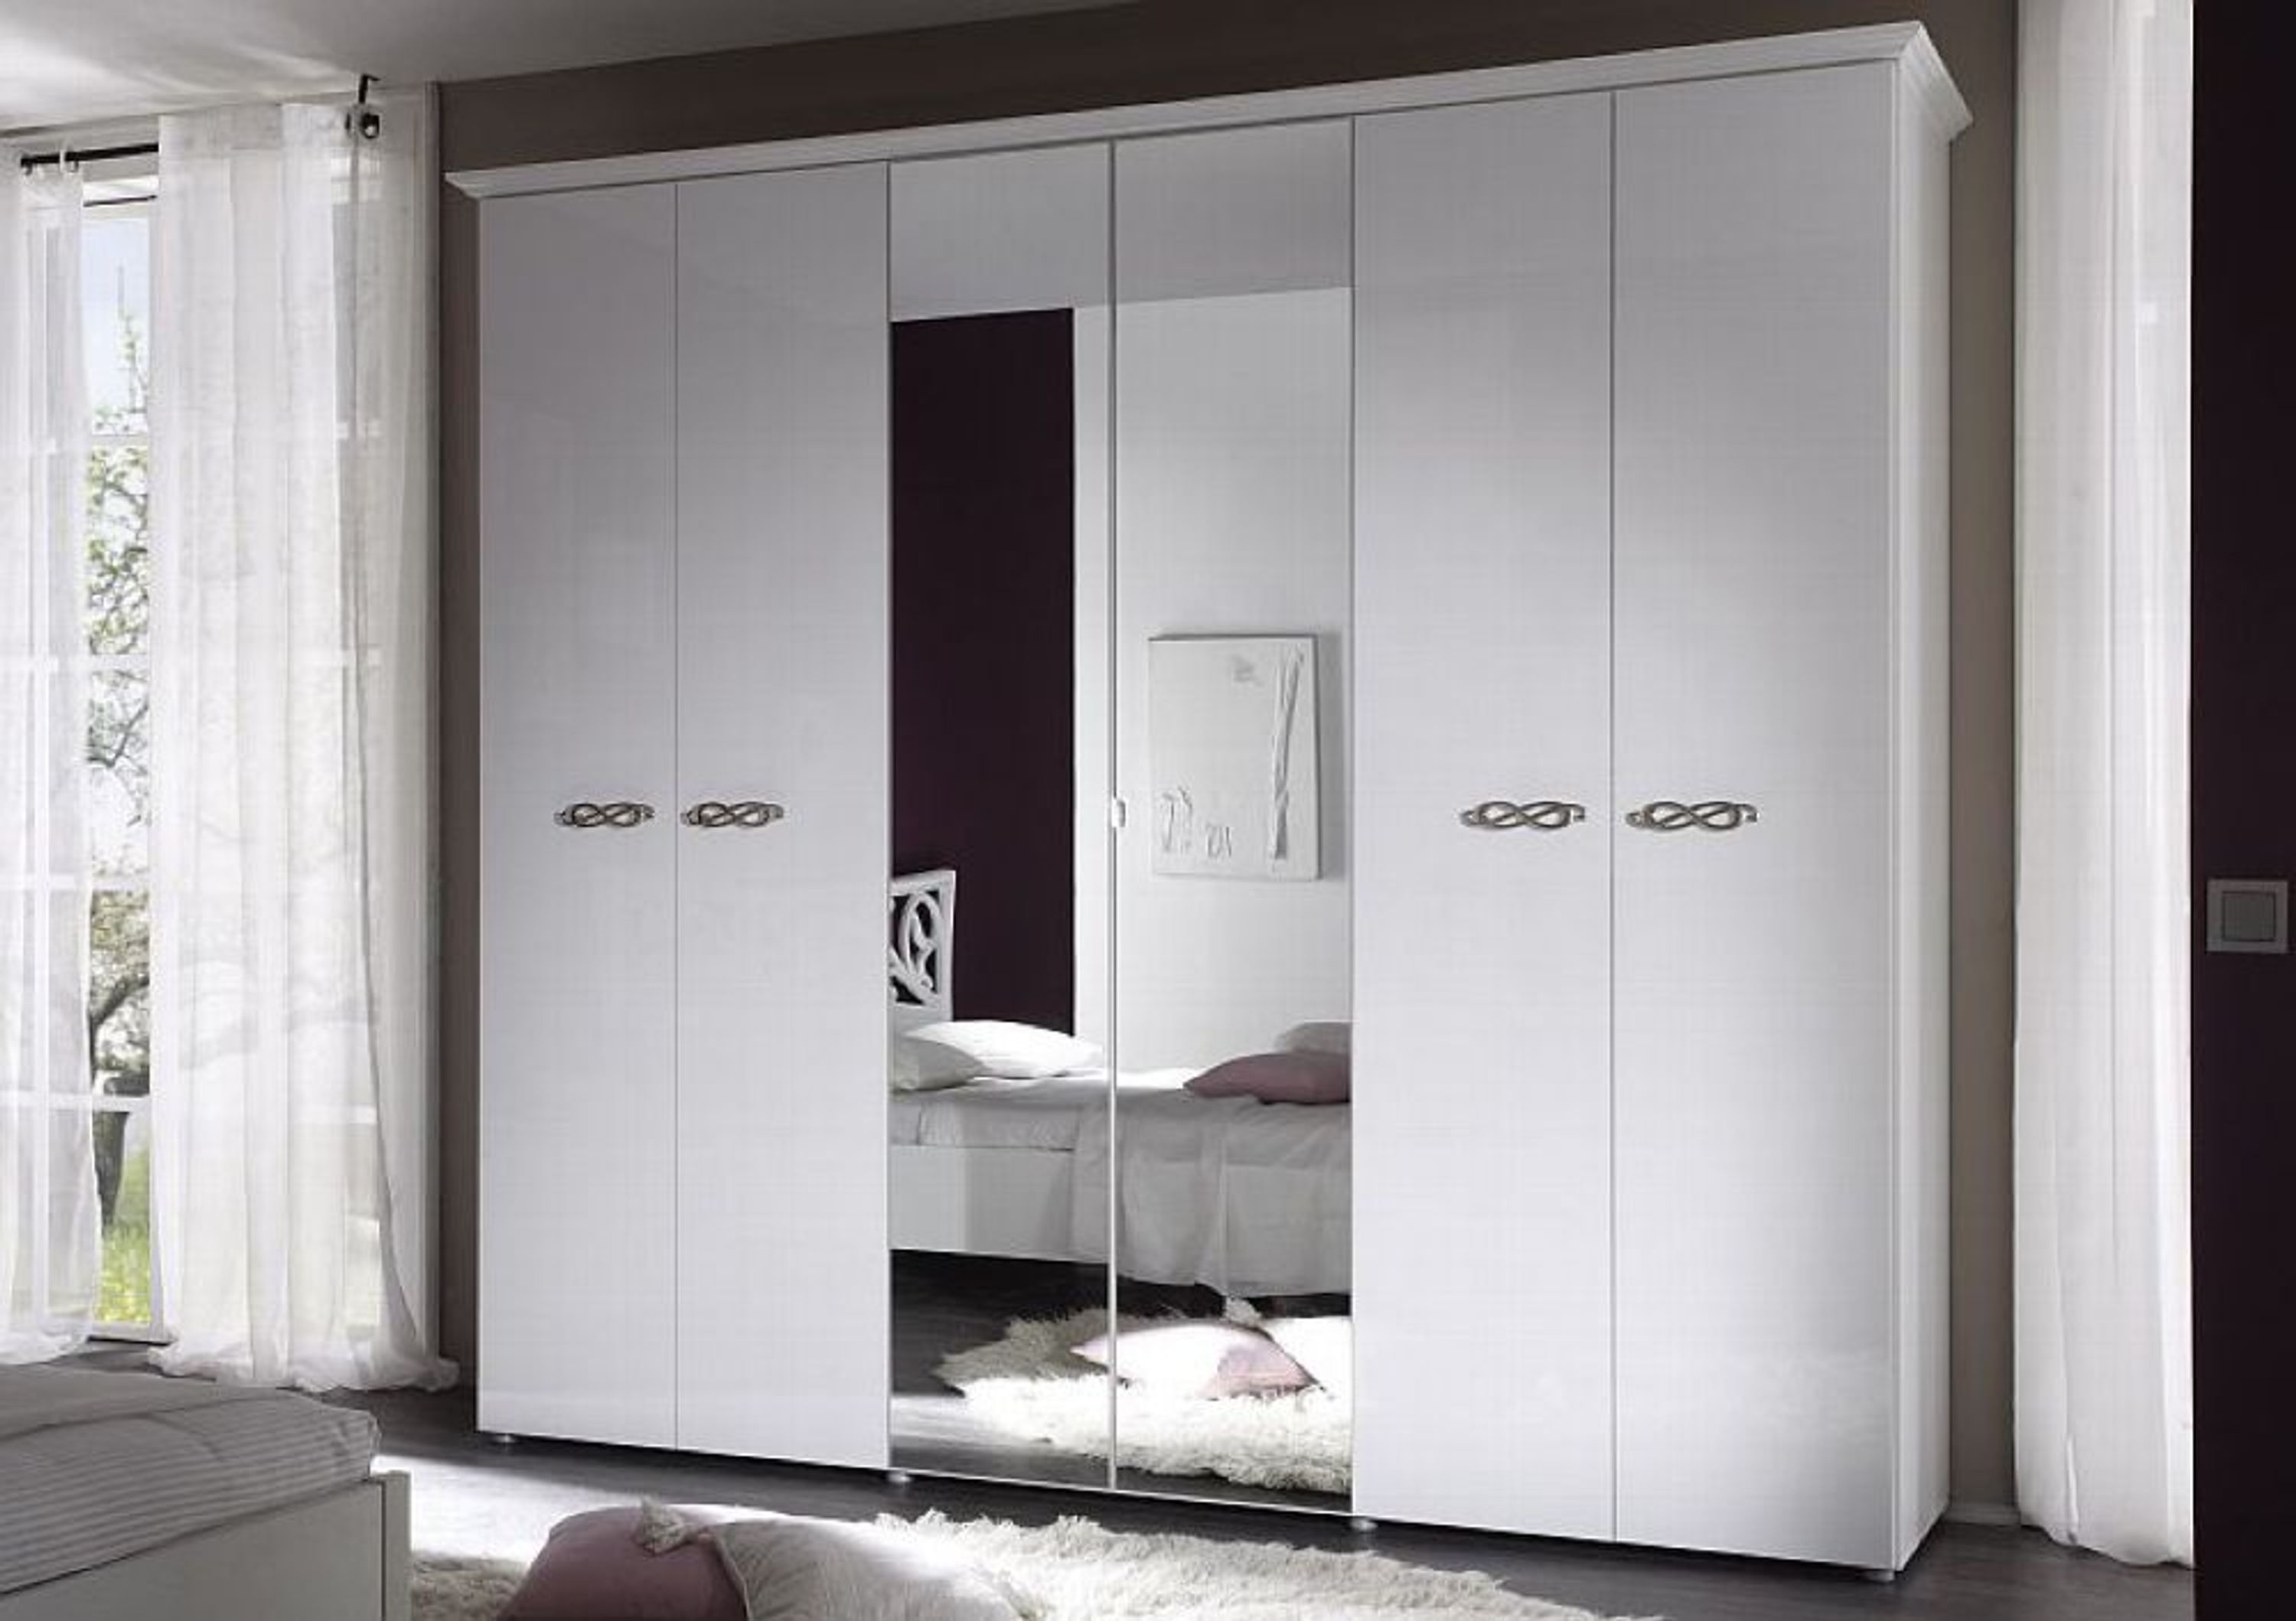 kleiderschrank sonja 6 t rig weiss hochglanz kaufen bei. Black Bedroom Furniture Sets. Home Design Ideas